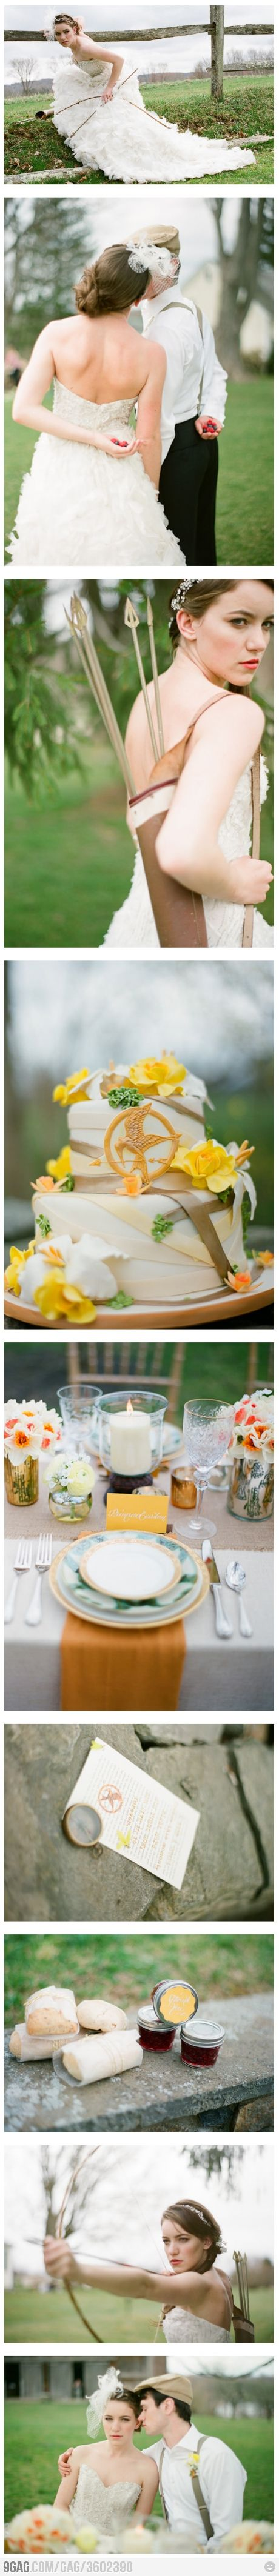 Hunger Games themed wedding. Holy mother of Peeta... this makes me want to re do my wedding!  can I go back 7 years now?